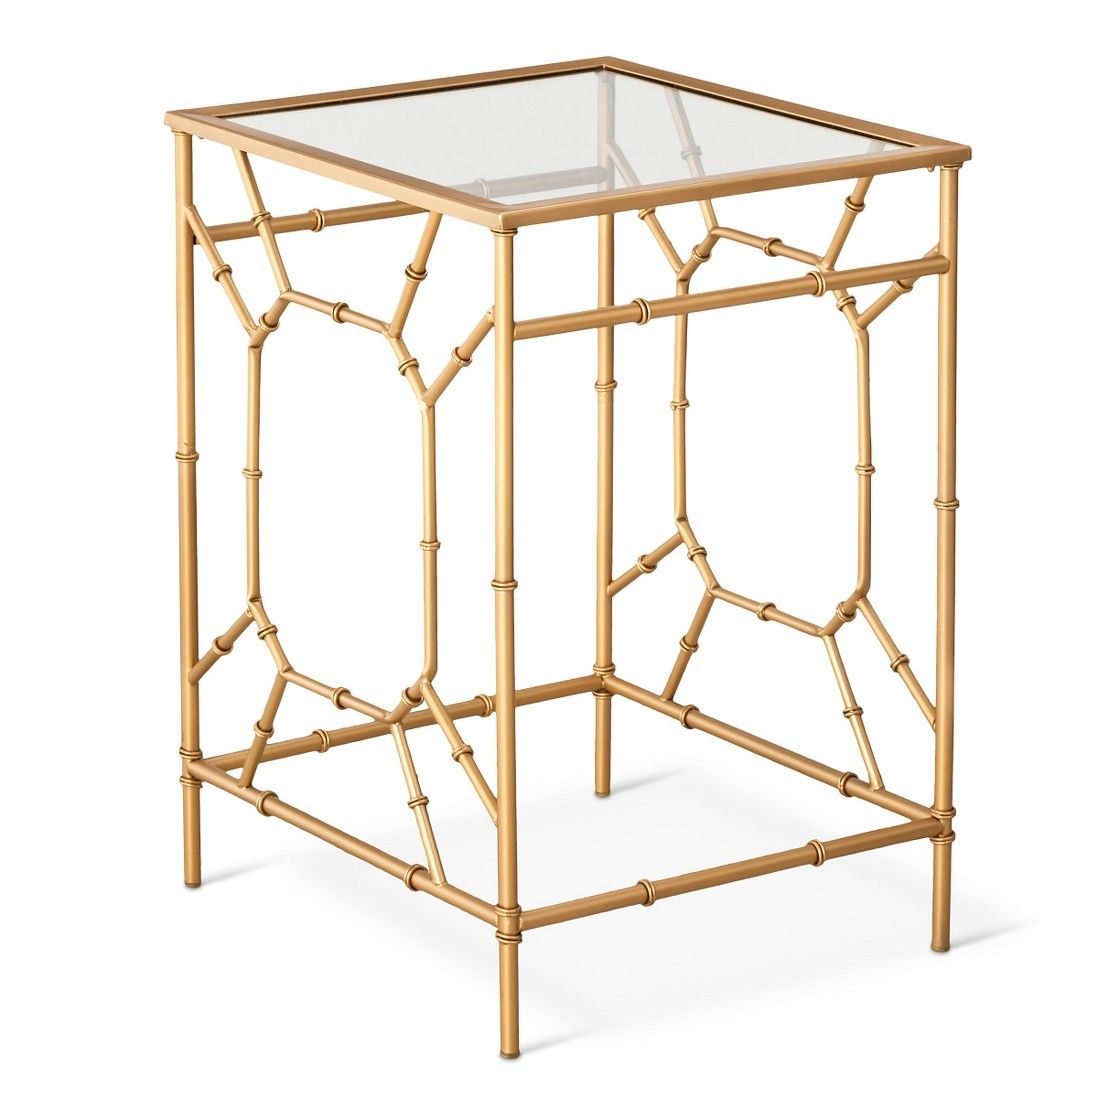 threshold bamboo motif accent table gold apartment livin drummer stool with backrest cylinder lamp modern counter height legs home goods mirrors nic cooler bath and beyond gift